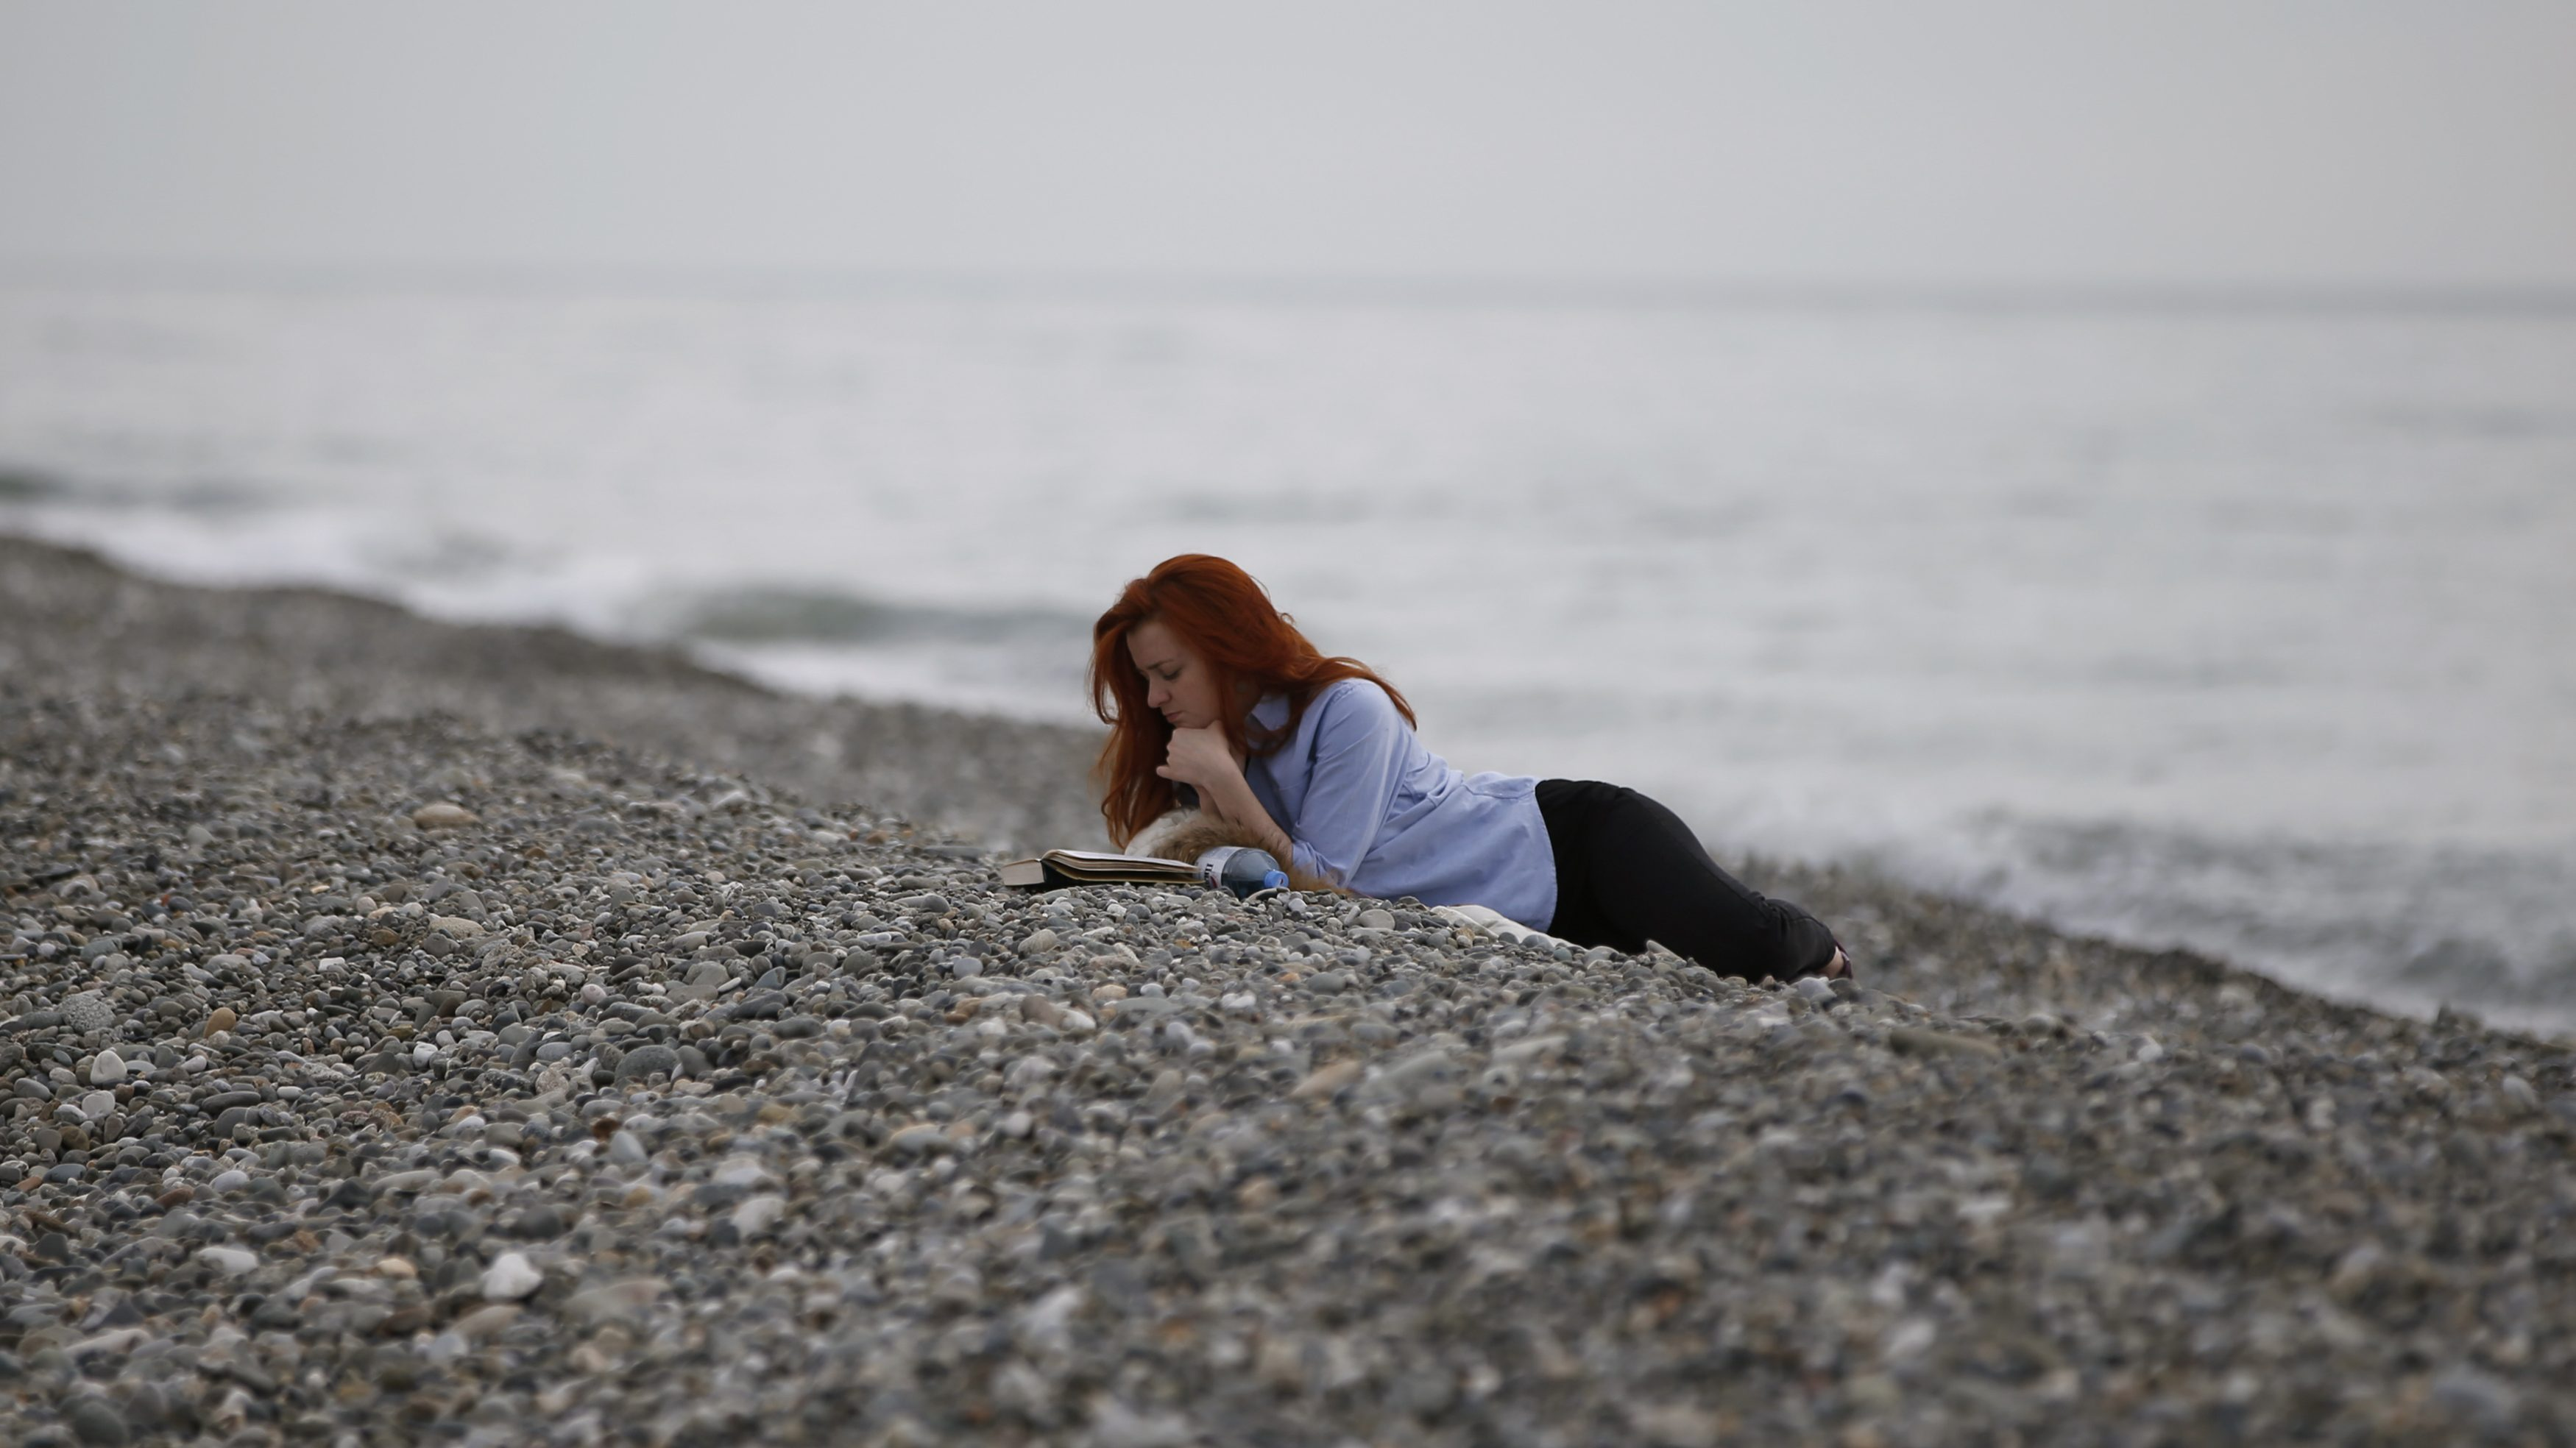 A woman reads a book on the beach at the Black Sea near the Olympic Park during the 2014 Sochi Winter Olympics